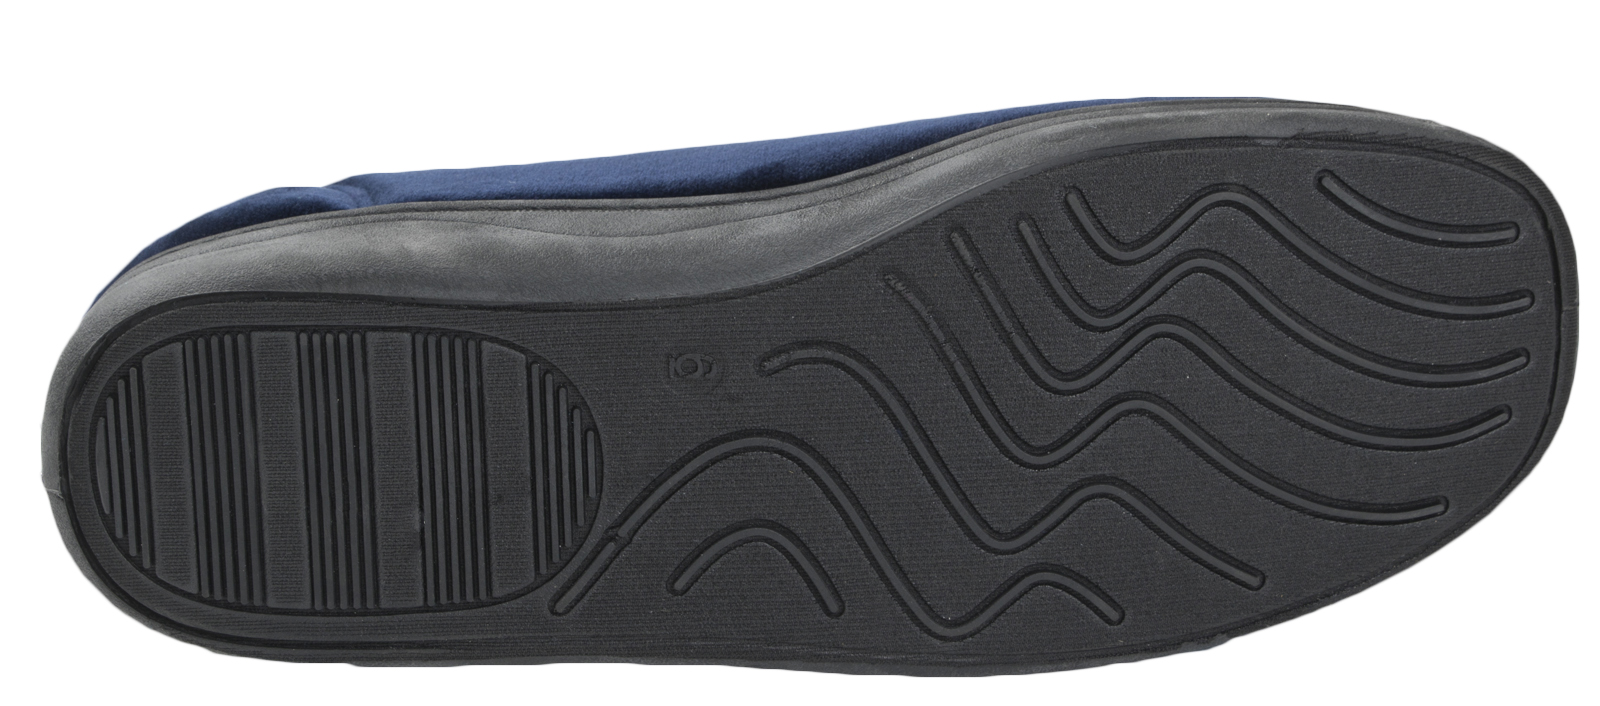 Dr Keller Diabetic Orthopaedic Comfort Slippers Shoes Wide Fit Adjustable Size